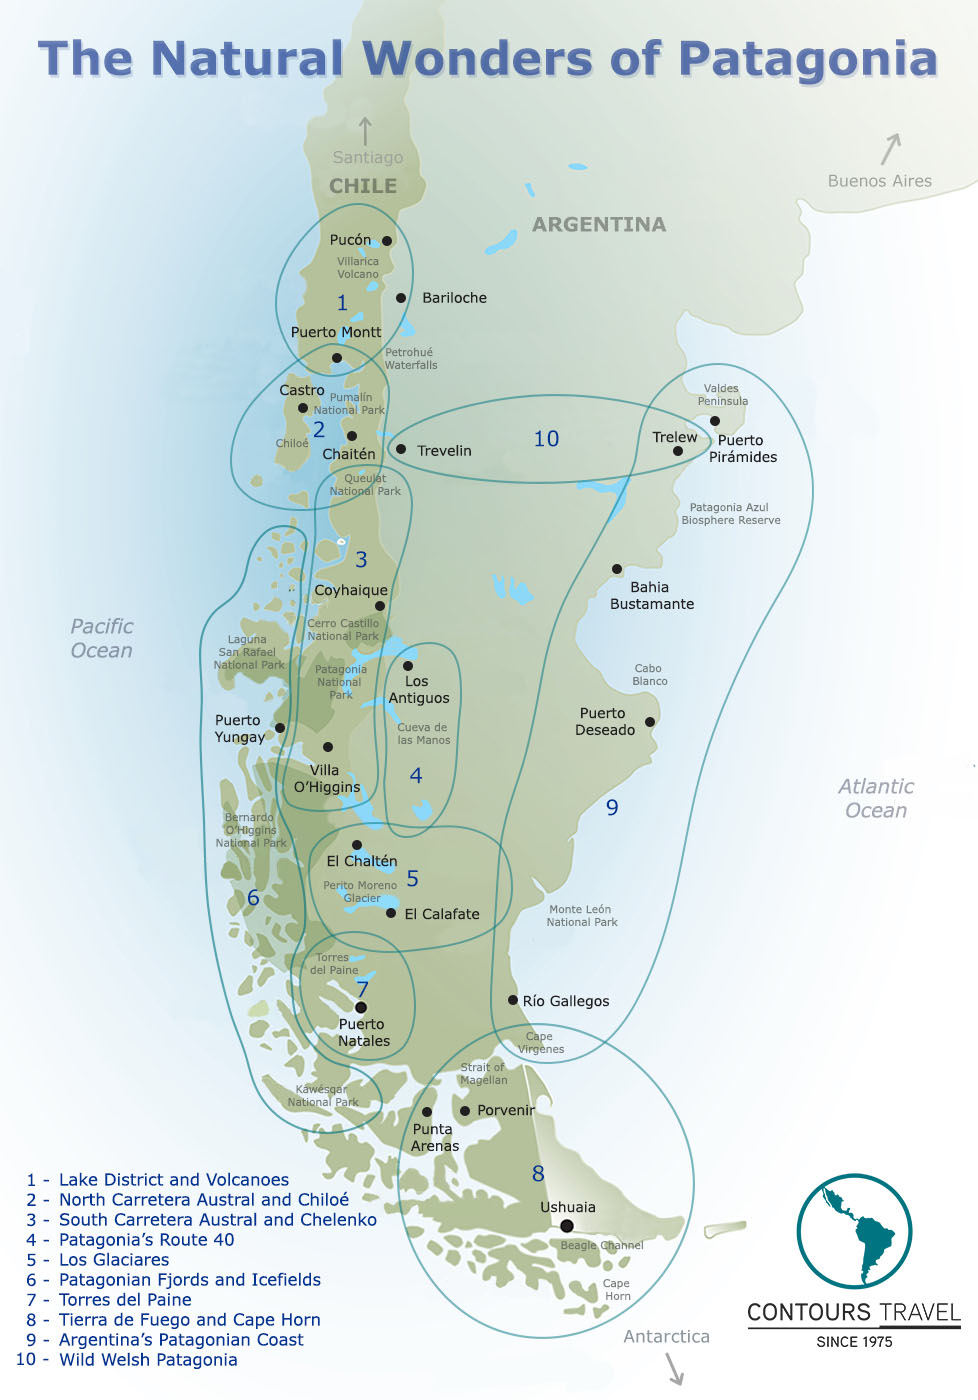 Map of Patagonia by regions Contours Travel